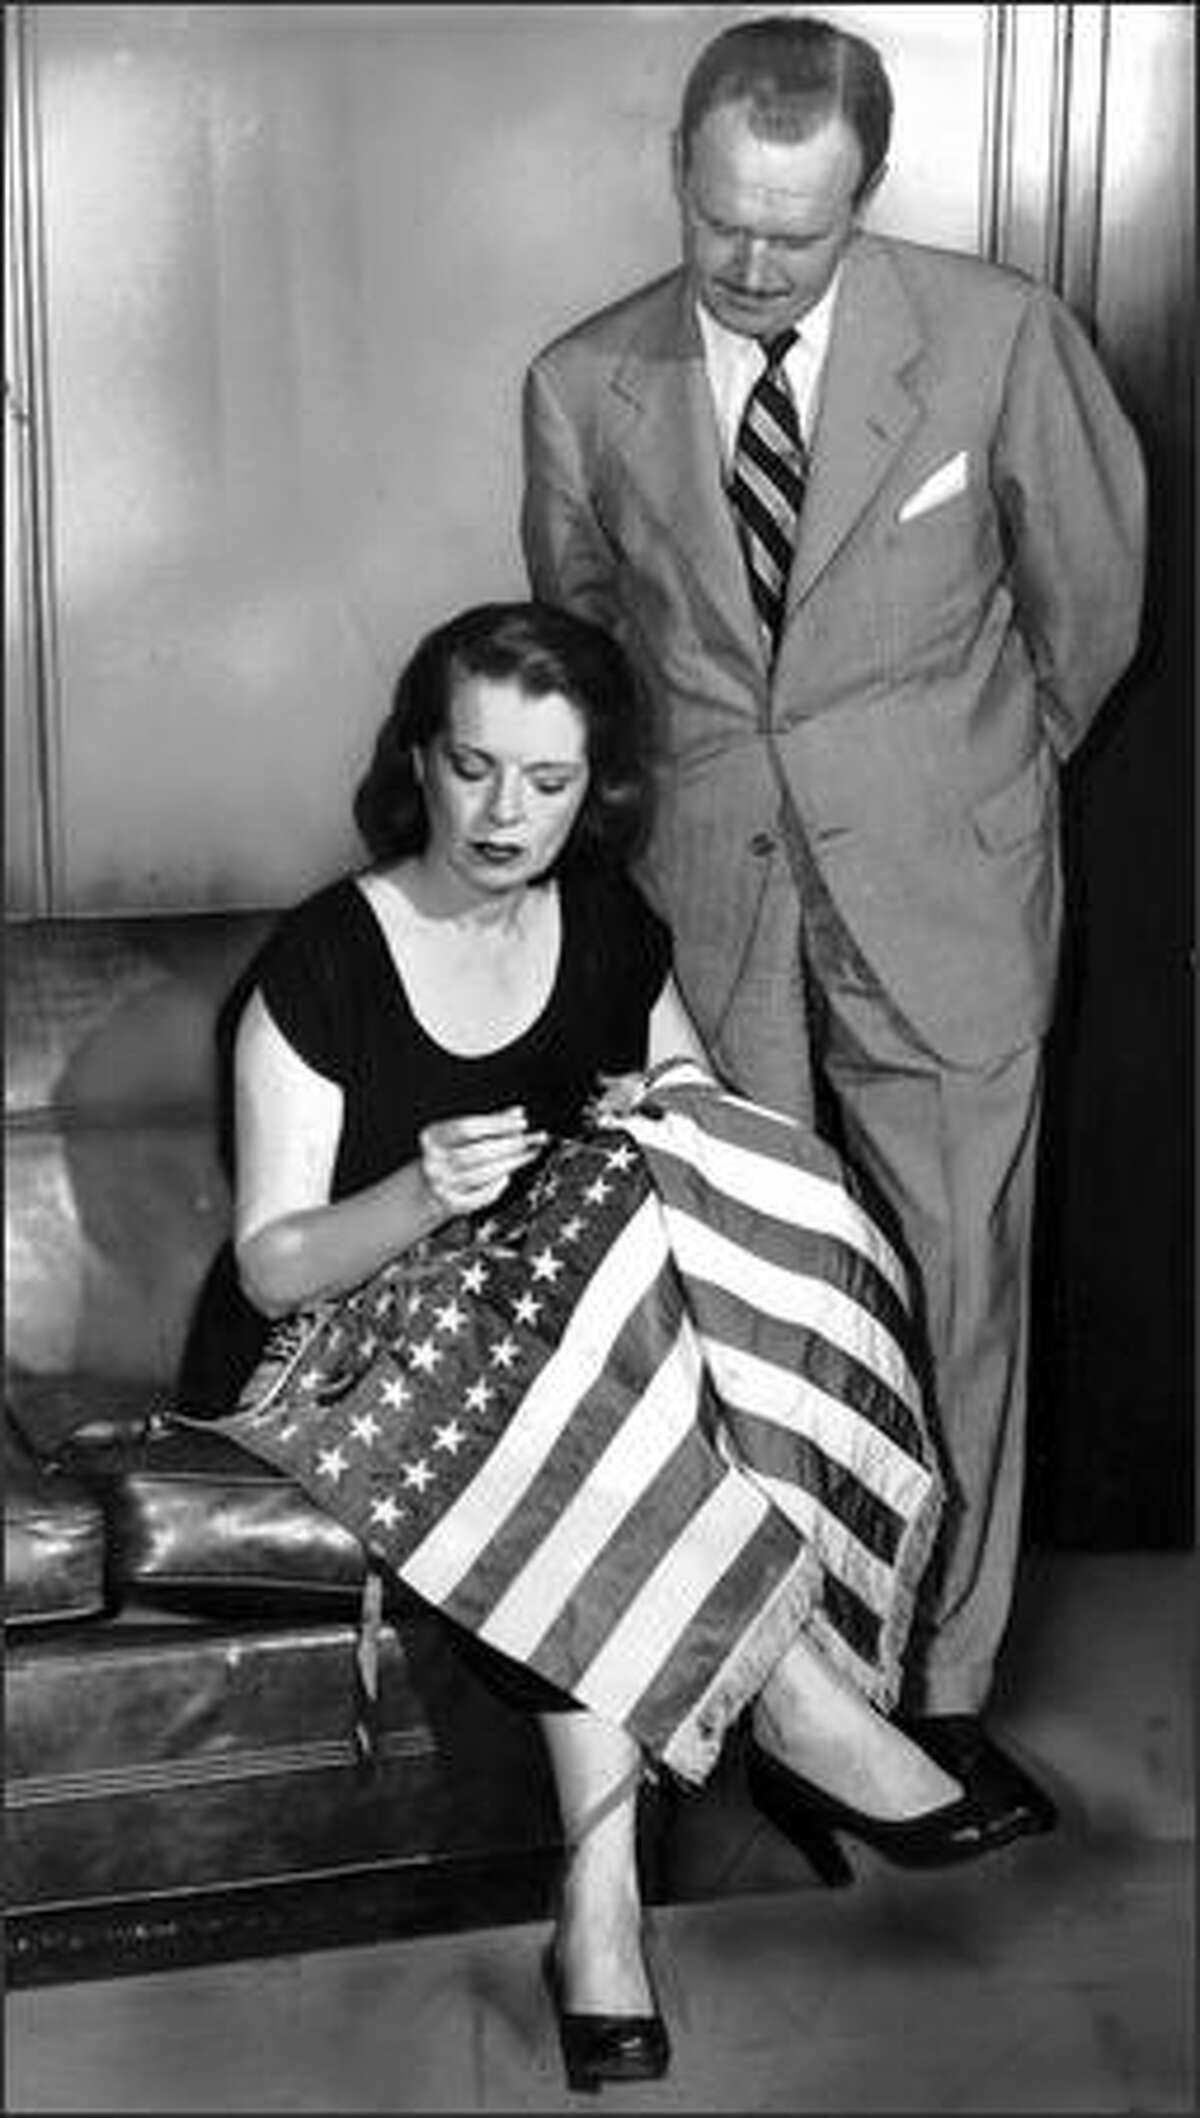 In July 1950, Mrs. Roy Gaston Booker of New York, a descendant of the woman who made the first American flag, puts finishing touches to a new 50-star American flag design favored by an overwhelming majority of newspaper readers polled by Alex Raymond, standing. The extra two stars anticipate Alaska and Hawaii achieving statehood.